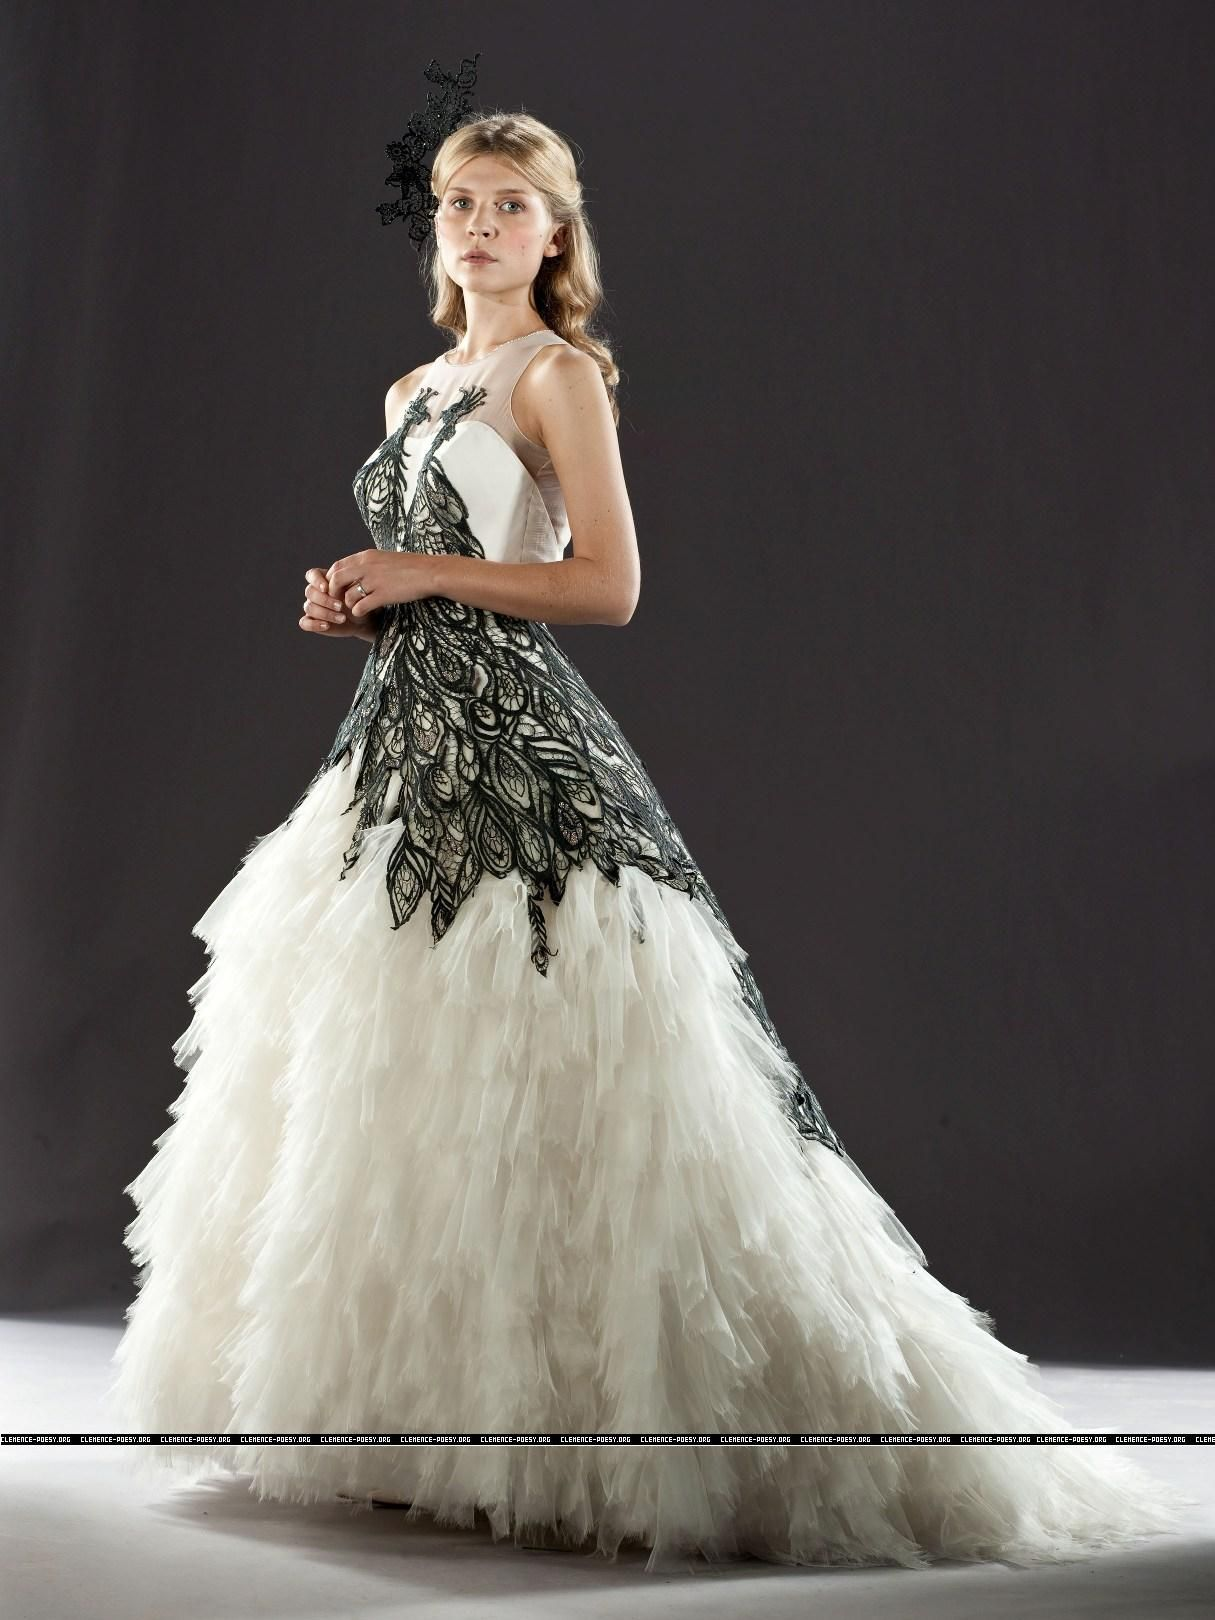 Fleur delacour wedding dress alexander mcqueen  HP Promotional Photos  Rubrika  snapeovaalways hot news from